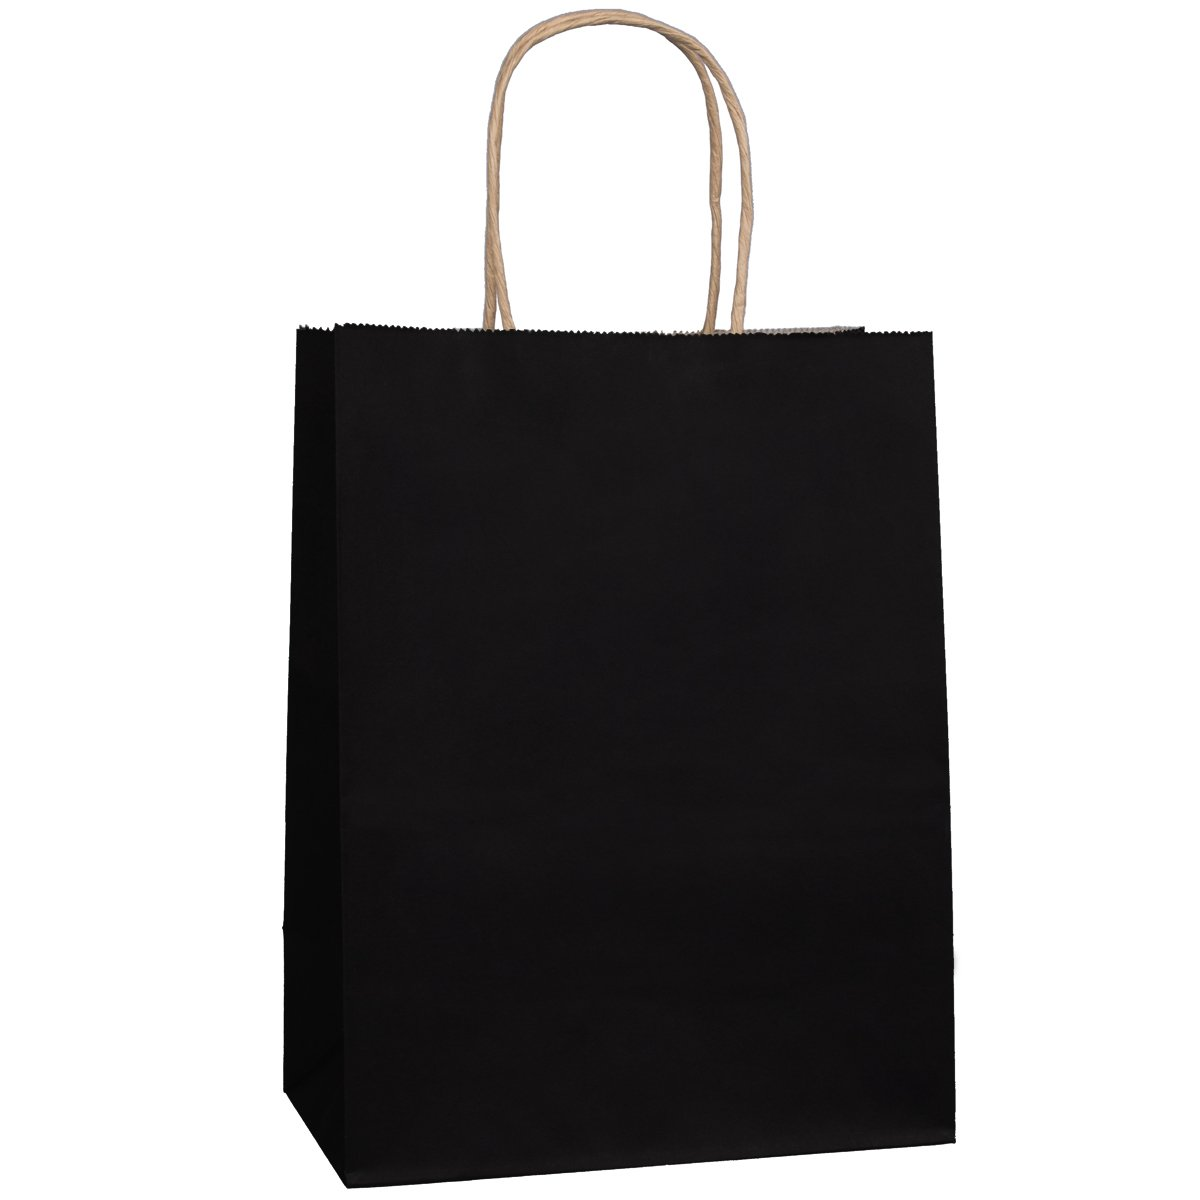 Gift Bags 8x4.75x10.5'' 25Pcs BagDream Black Shopping Bags,Cub, Paper Bags, Kraft Bags, Retail Bags, Paper Bags with Handles